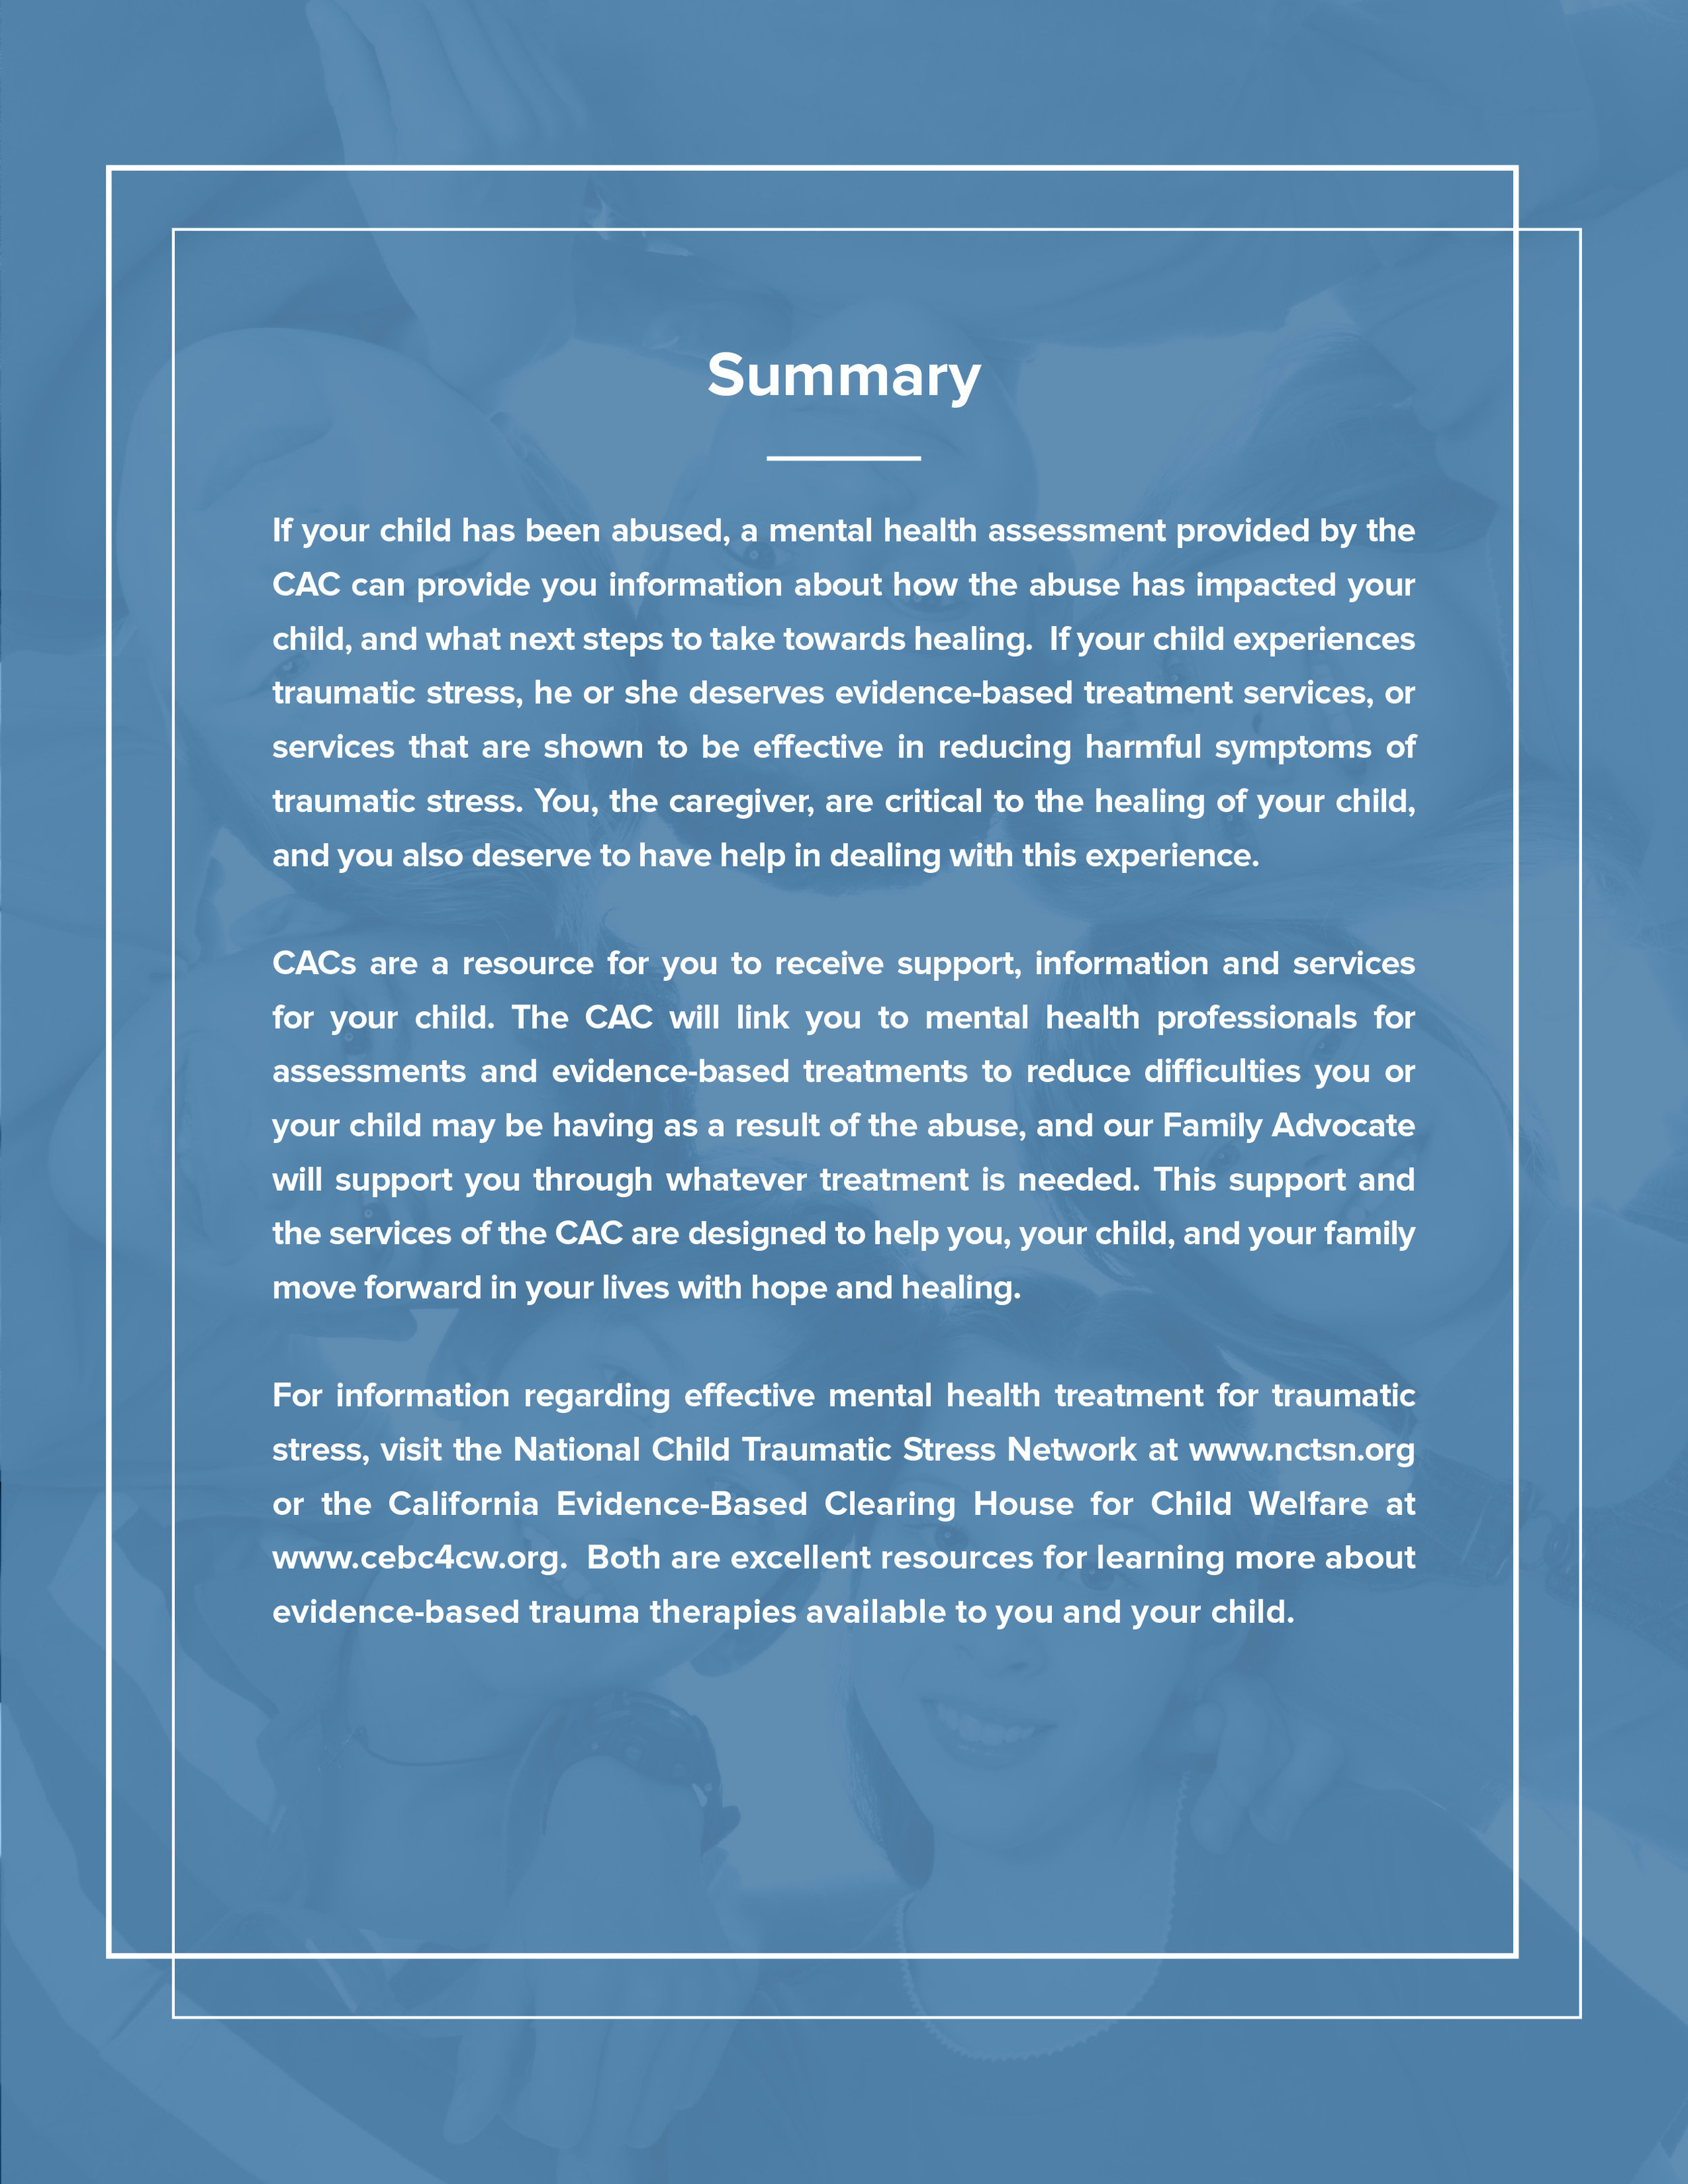 NCA Helping Your Children Heal From Abuse Brochure June2015 our logo-7 copy - Copy.jpg